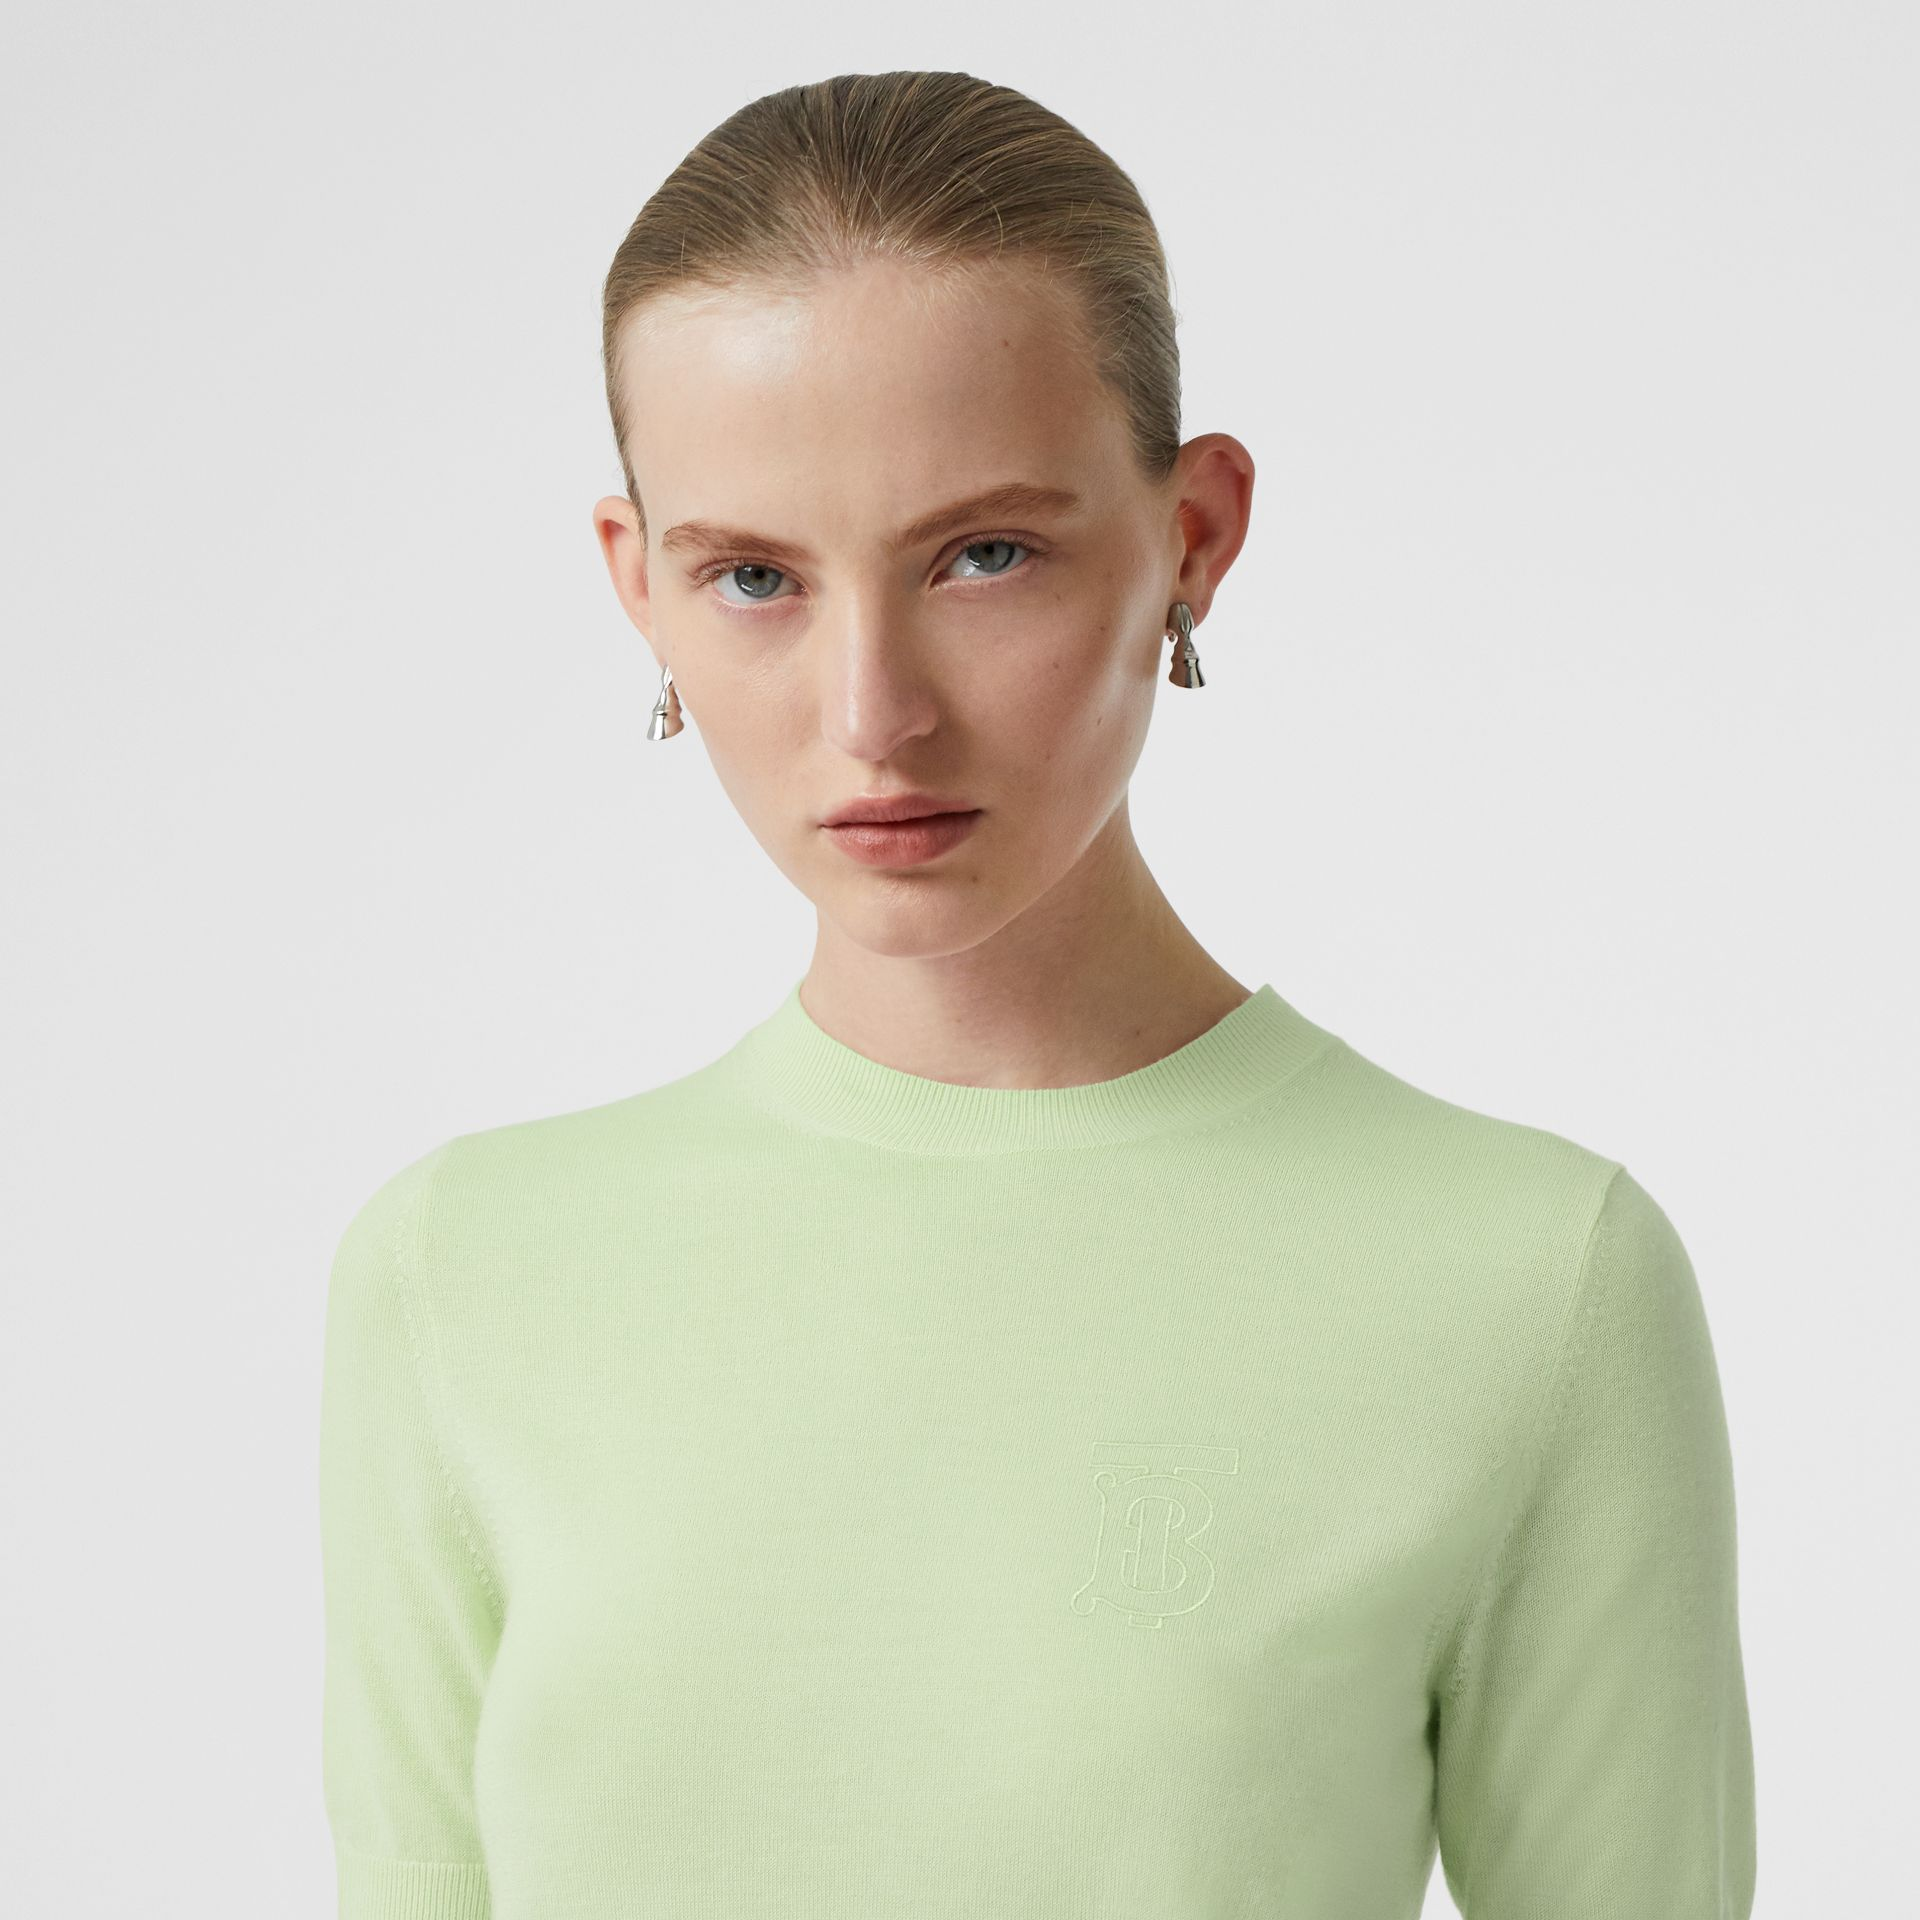 Monogram Motif Cashmere Top in Pistachio - Women | Burberry - gallery image 1